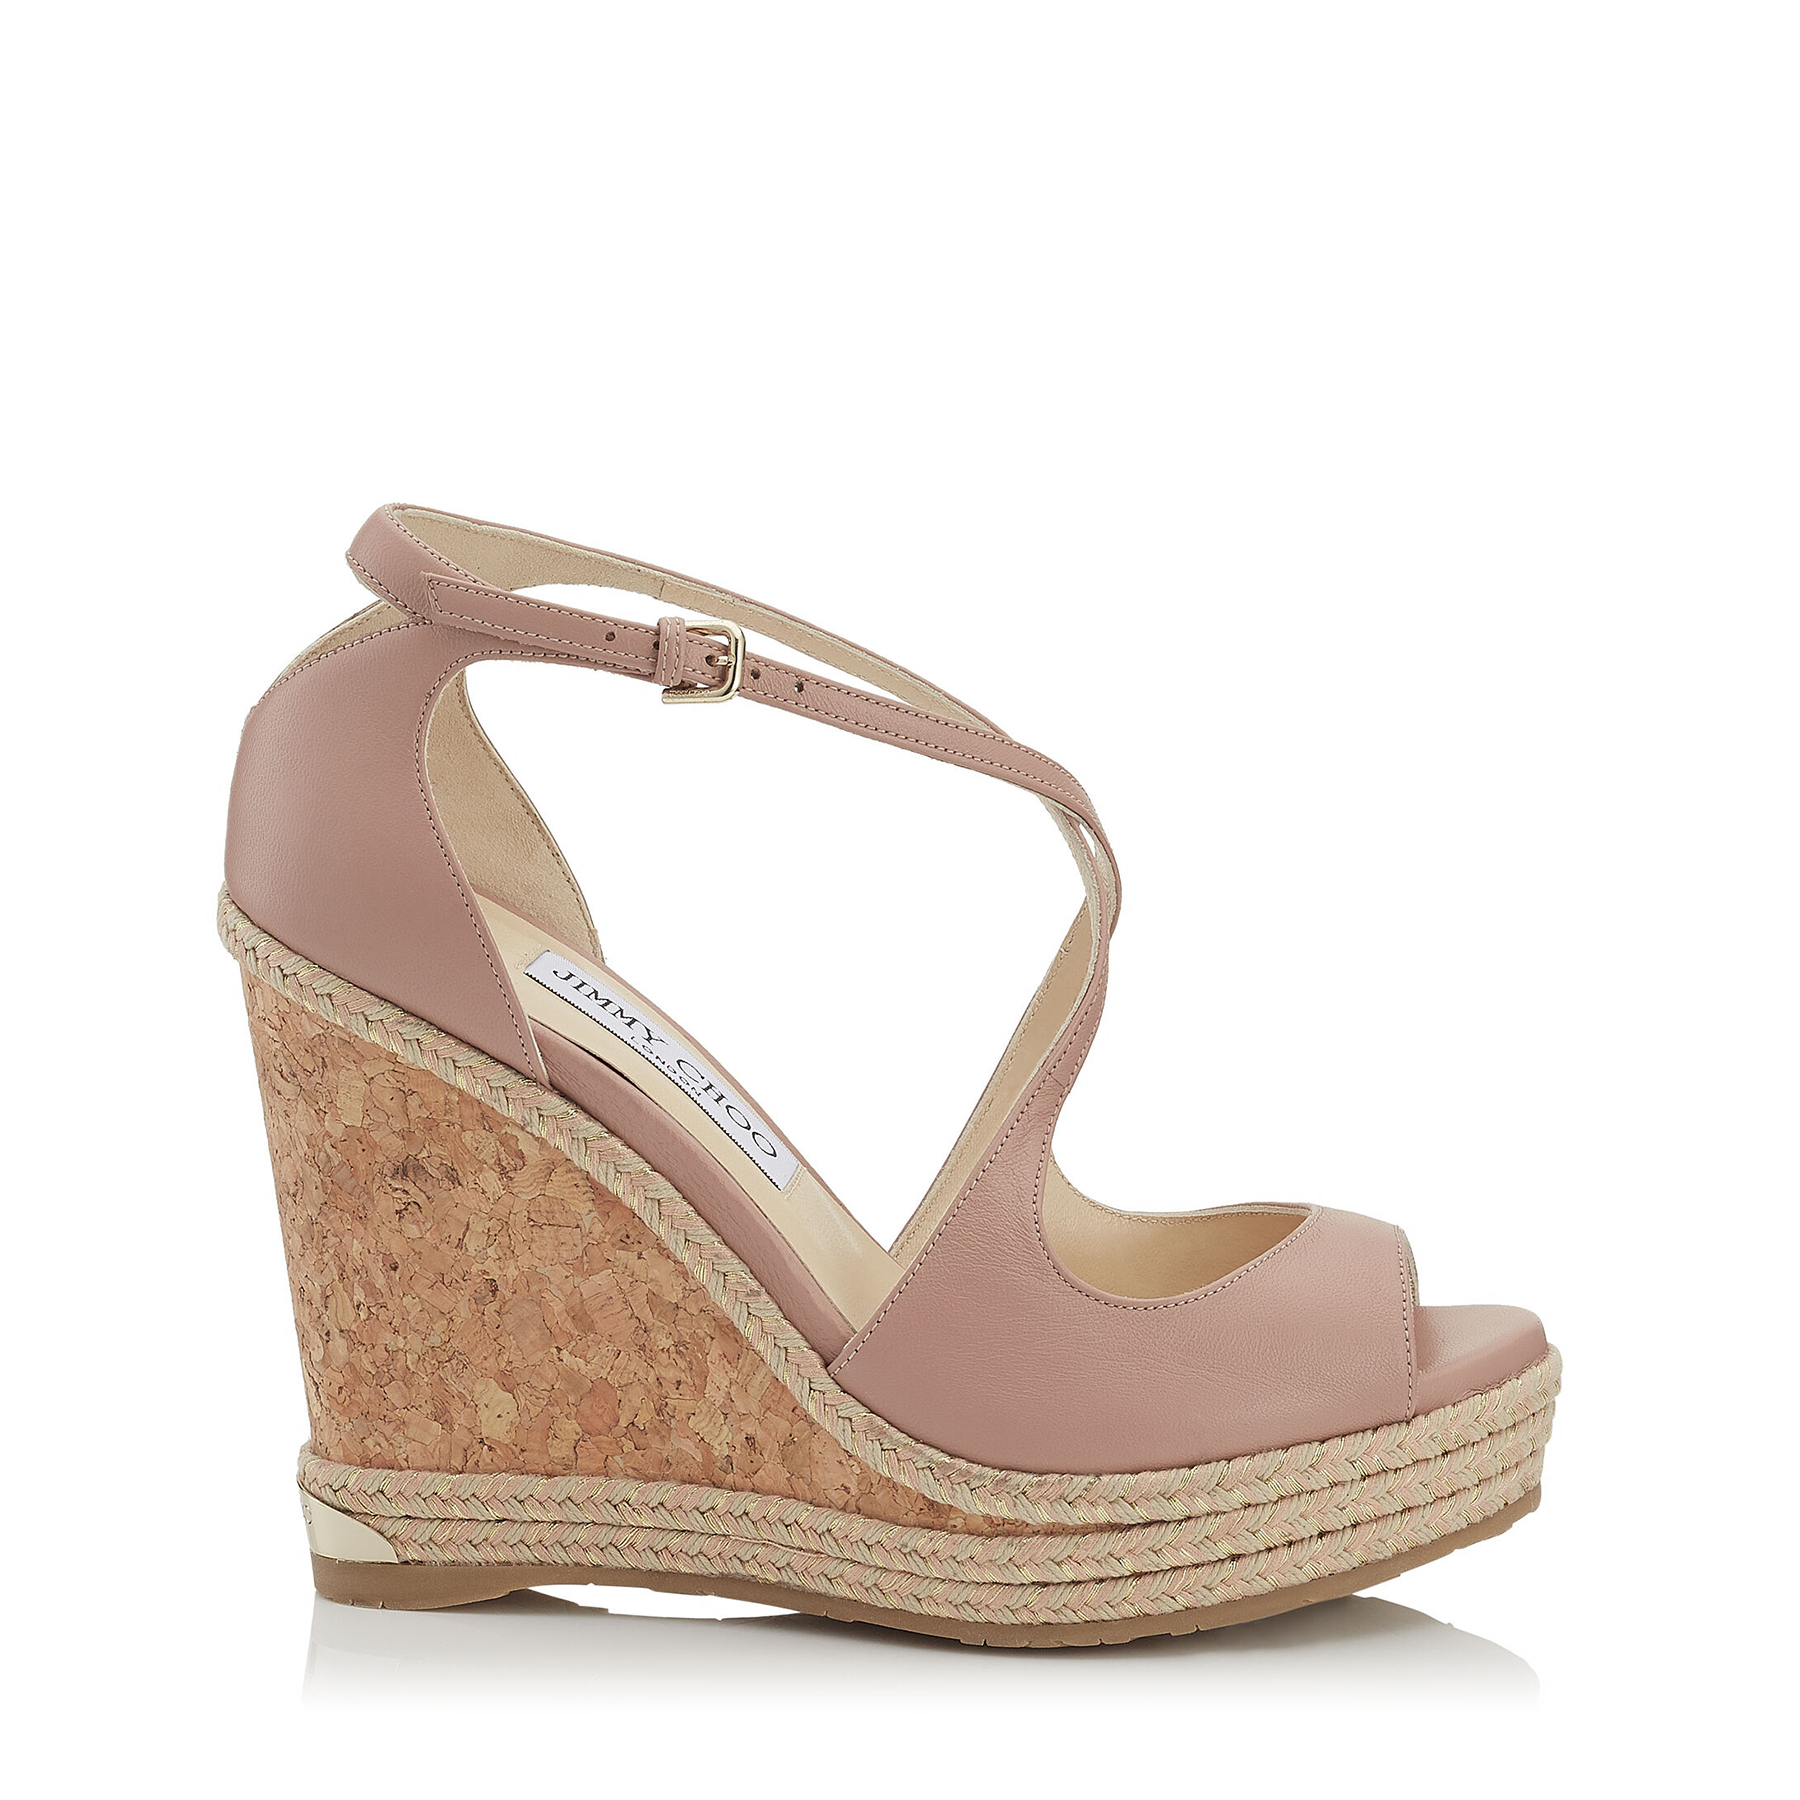 DAKOTA 120 Ballet Pink Nappa Leather Wedge with Tonal Metallic Raffia by Jimmy Choo